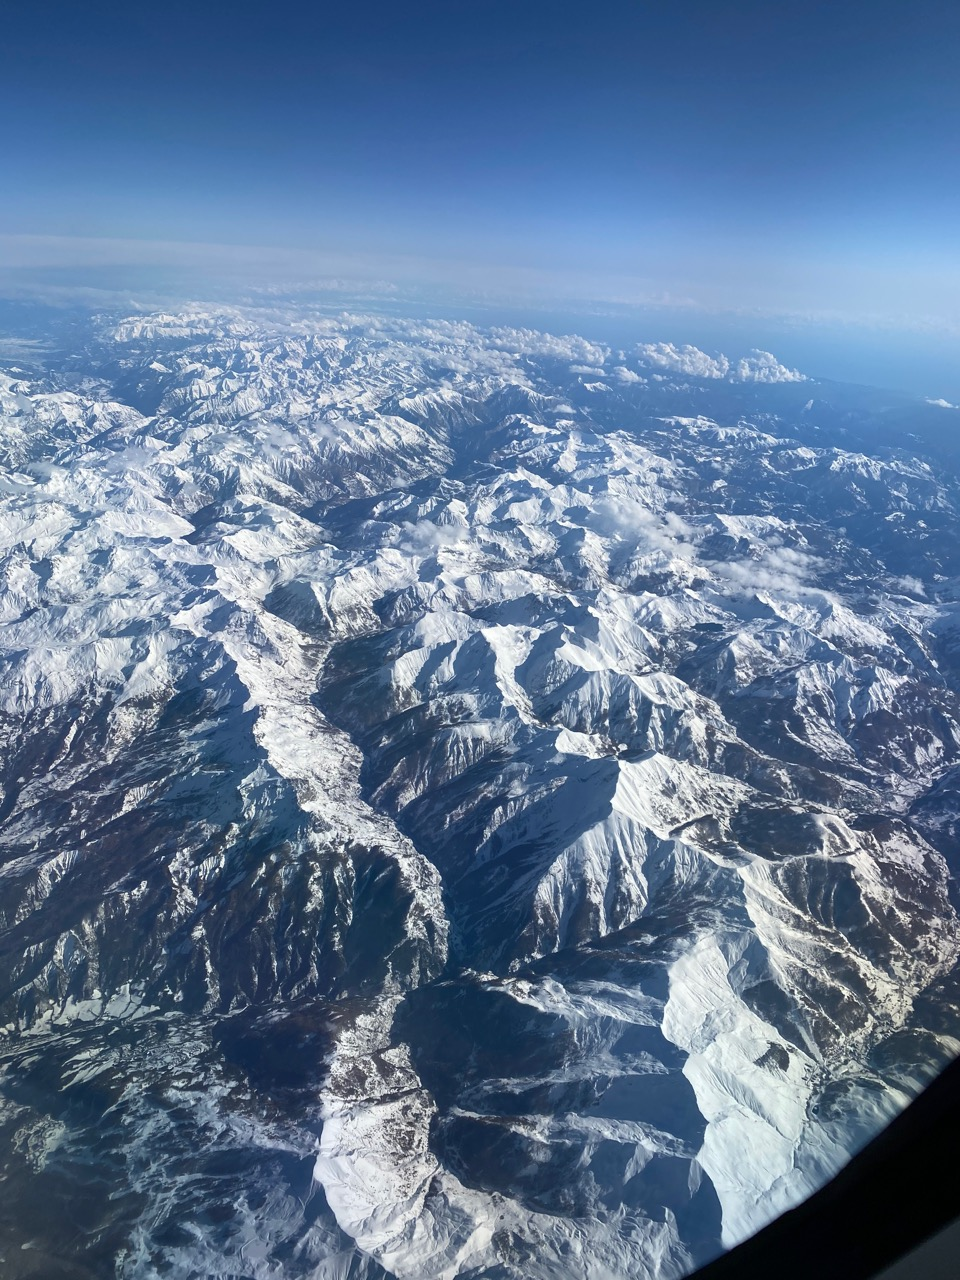 Private Jet Charter Flying Above the Swiss Alps